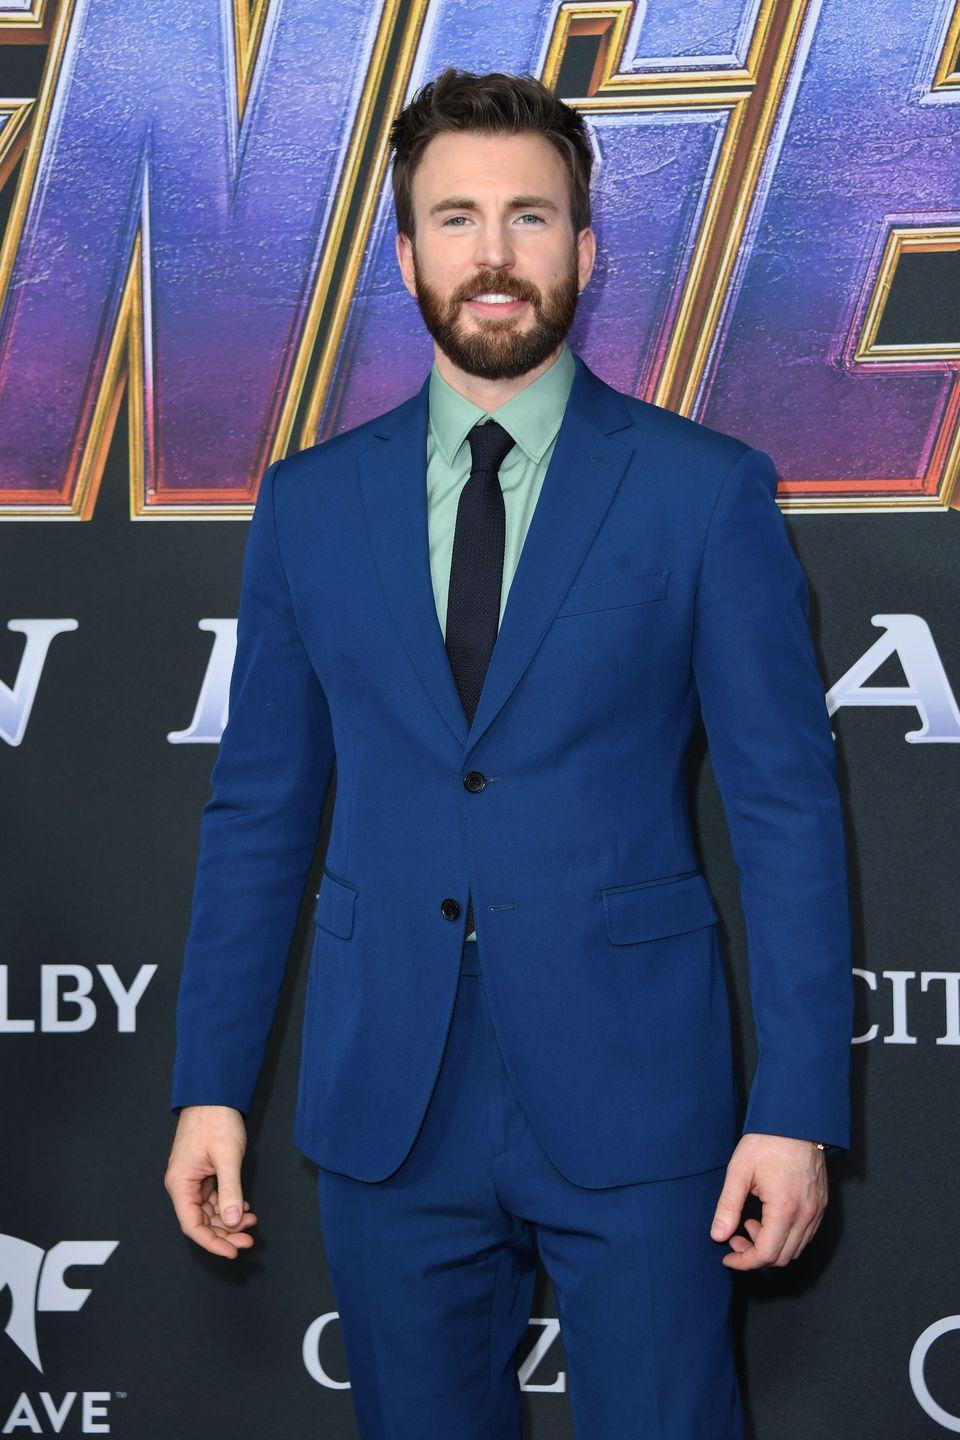 """<p>In order to match up to Evans' action skills in the <em>Avengers</em> films, stunt double Sam Hargrave (and director of the Netflix film <em>Extraction</em>) knew he had to make sure his workout routine was in top shape. """"When you're part of something like that, you don't want anybody looking to you as the weak link,"""" he told <em><a href=""""https://www.menshealth.com/fitness/a31024424/chris-evans-stunt-double-workout/"""" rel=""""nofollow noopener"""" target=""""_blank"""" data-ylk=""""slk:Men's Health"""" class=""""link rapid-noclick-resp"""">Men's Health</a></em>. """"You've got to be able to do your backflips, you've got to do your martial arts, and you have to do take after take<em>.""""</em></p><p><a class=""""link rapid-noclick-resp"""" href=""""https://www.youtube.com/watch?v=hKpU3Frpzpc&t=30s"""" rel=""""nofollow noopener"""" target=""""_blank"""" data-ylk=""""slk:Watch here"""">Watch here</a><br></p>"""